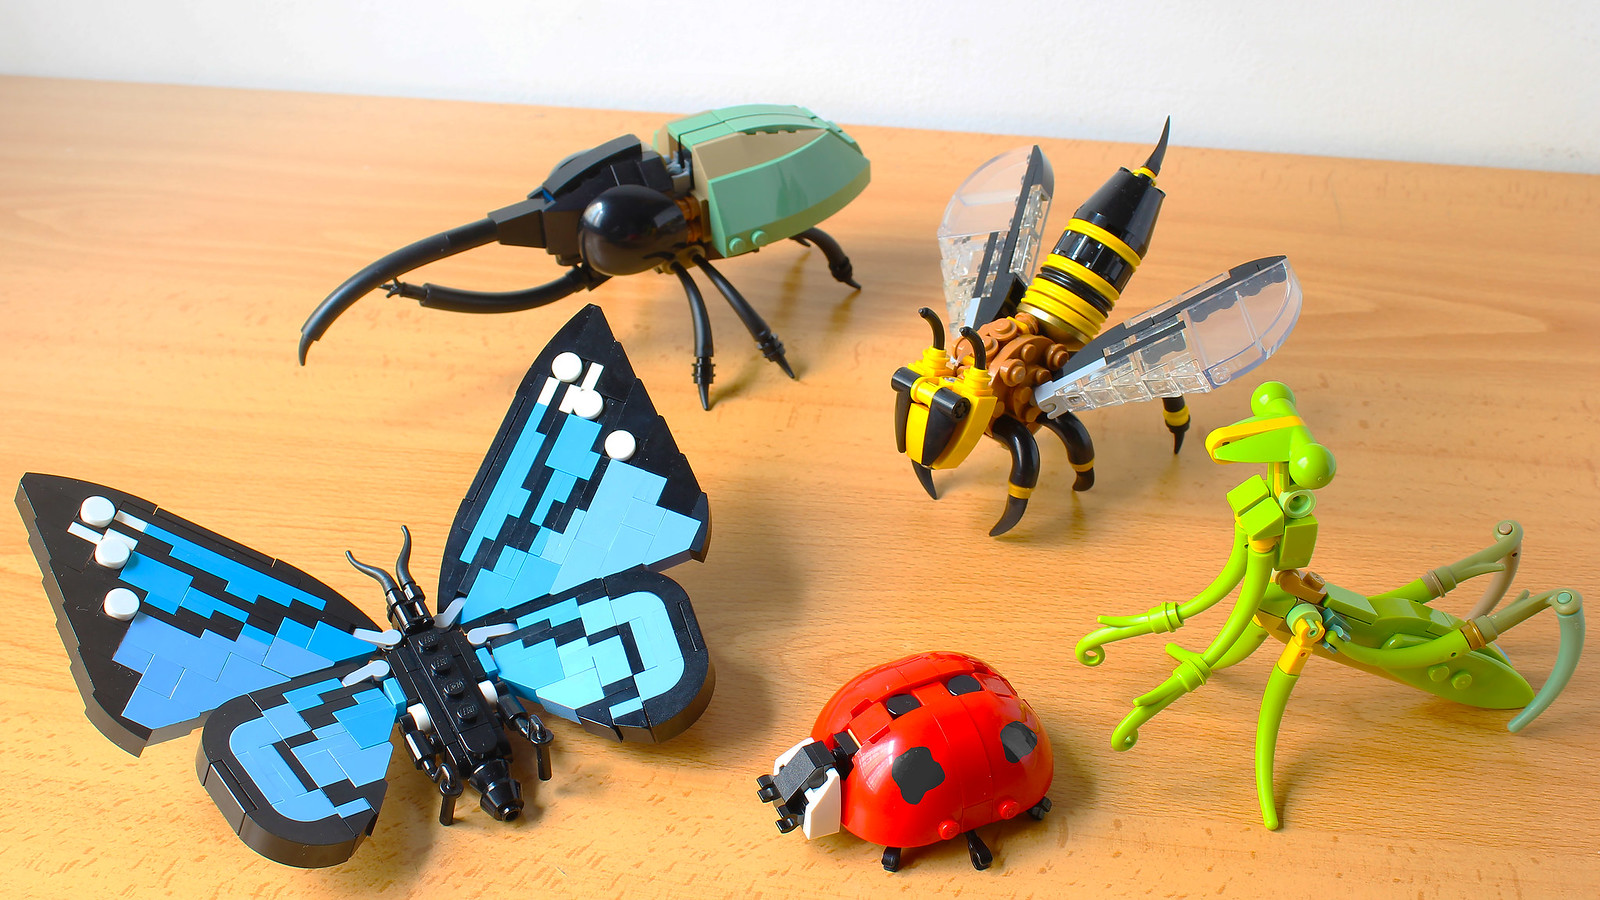 LEGO Insect Collection (new LEGO Ideas project!)